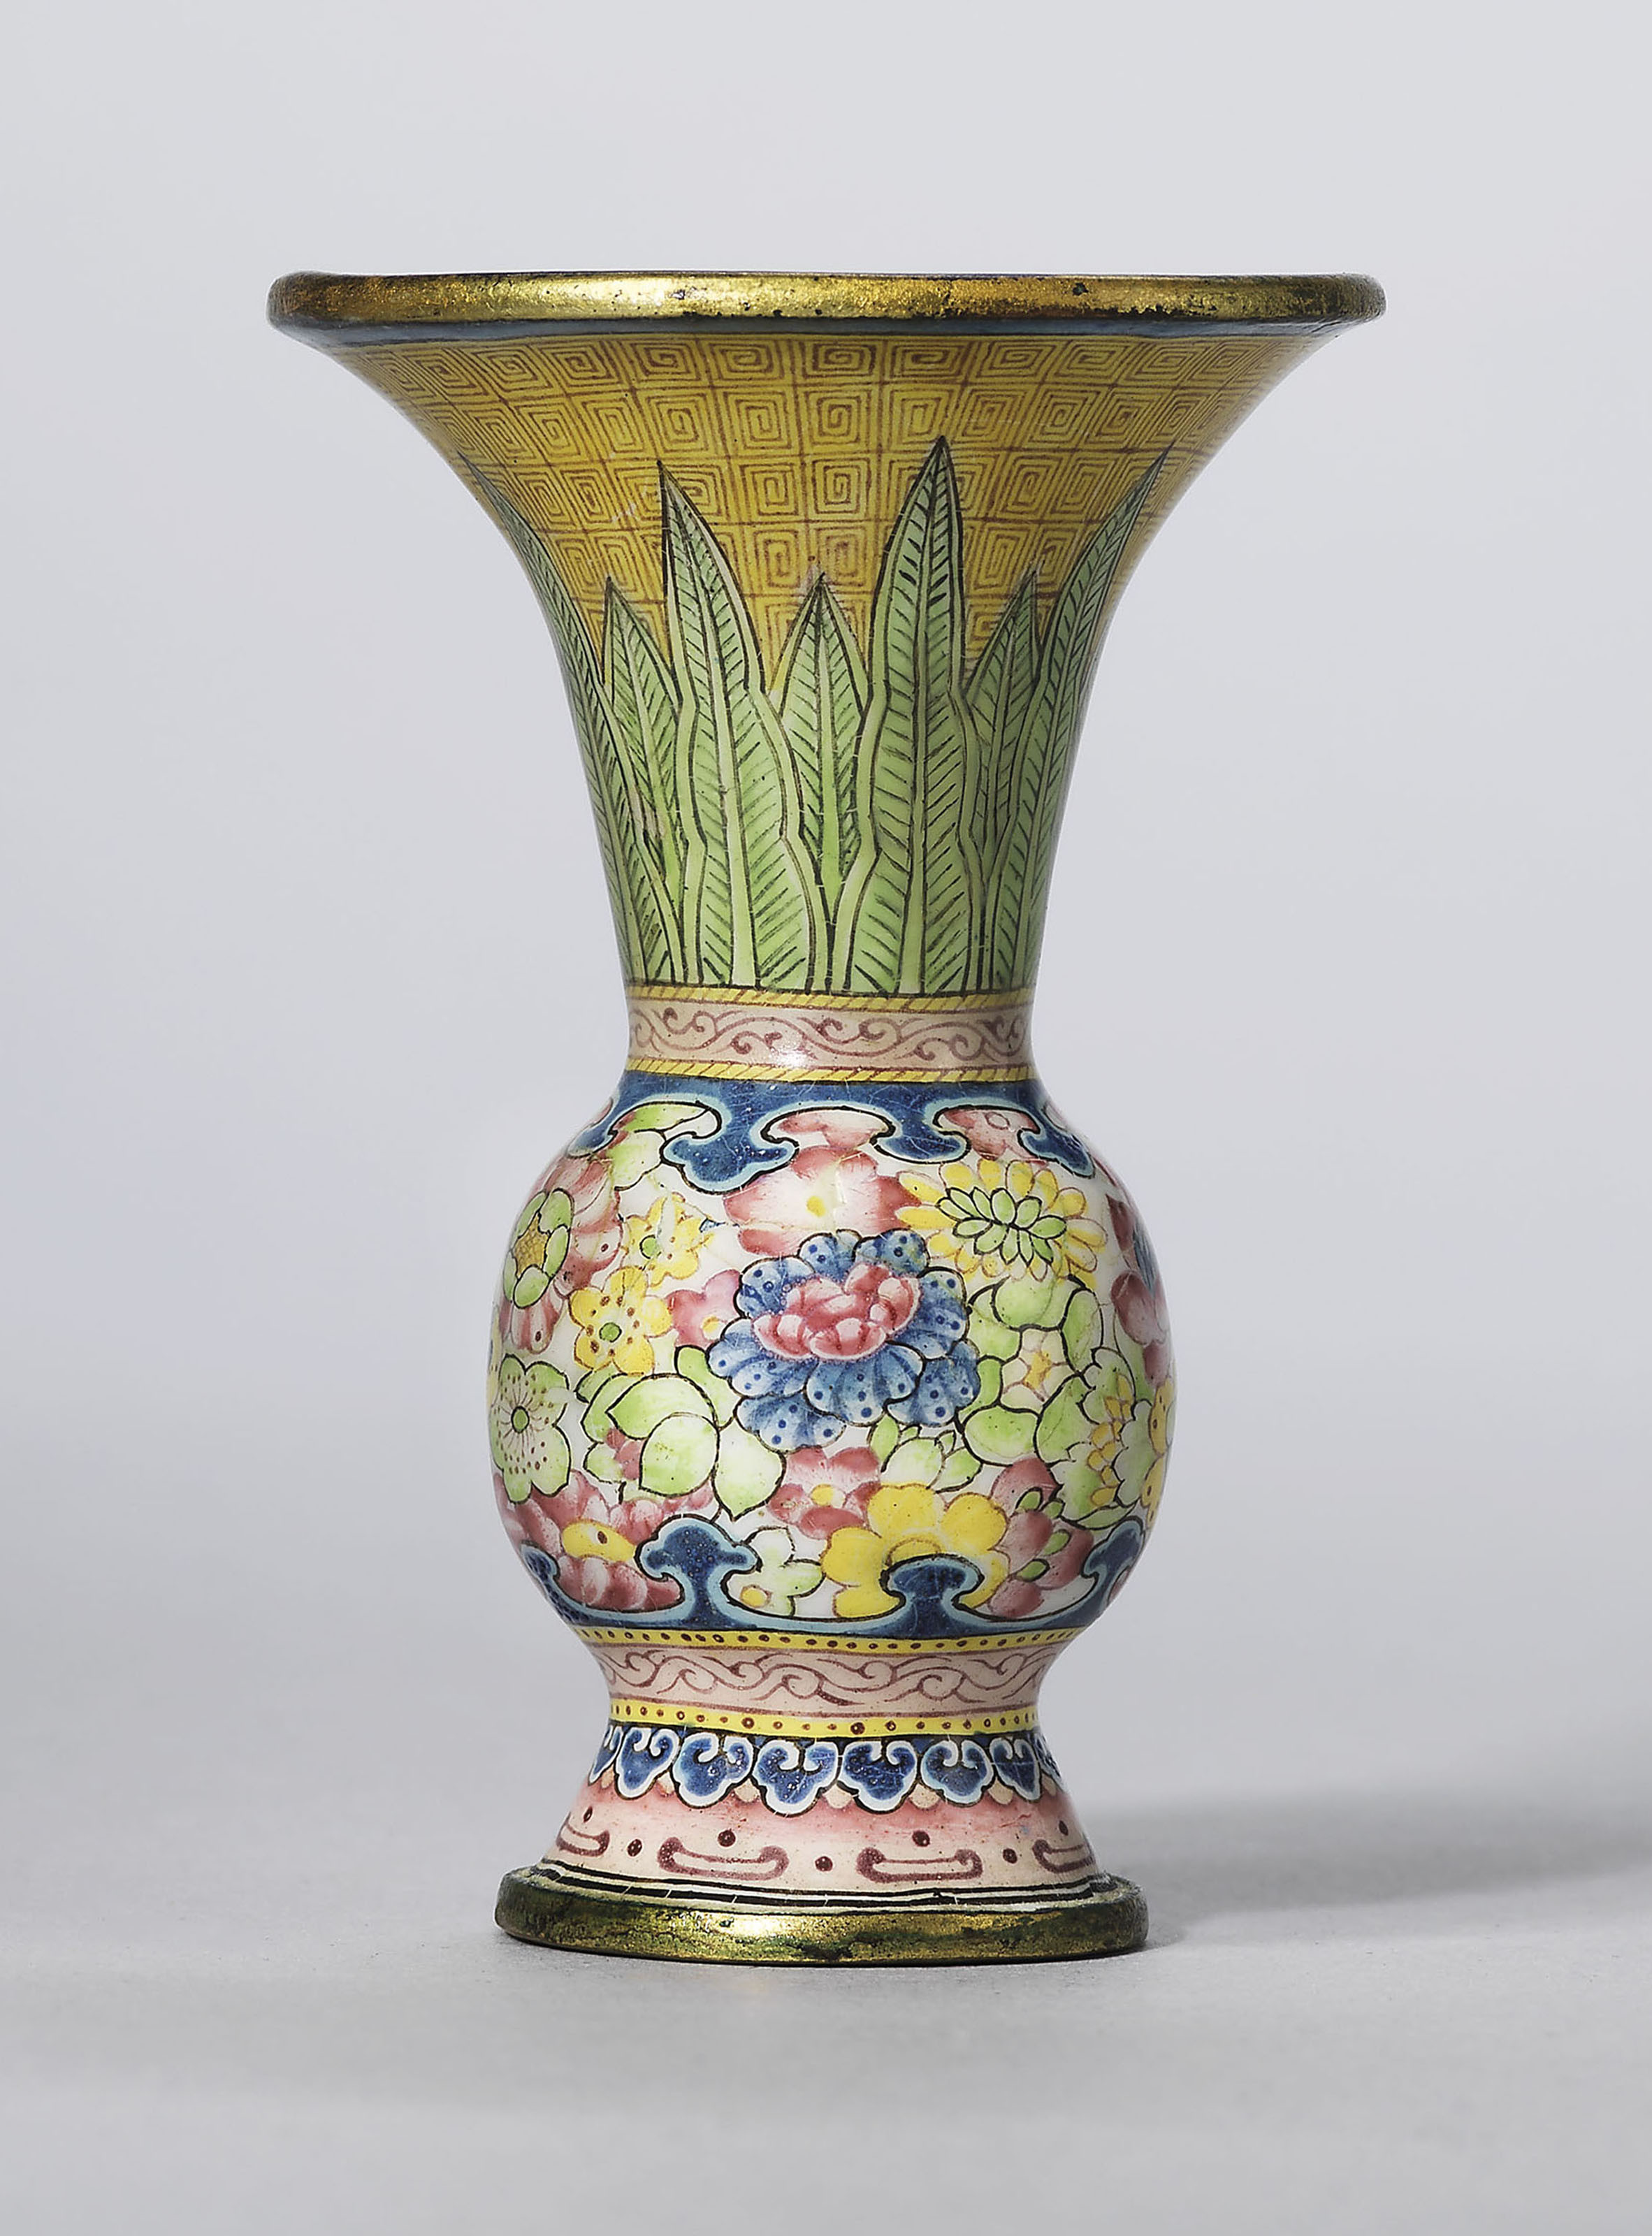 ceramic wall vases for flowers of a guide to the symbolism of flowers on chinese ceramics christies throughout a rare painted enamel gu shaped miniature vase qianlong four character mark in